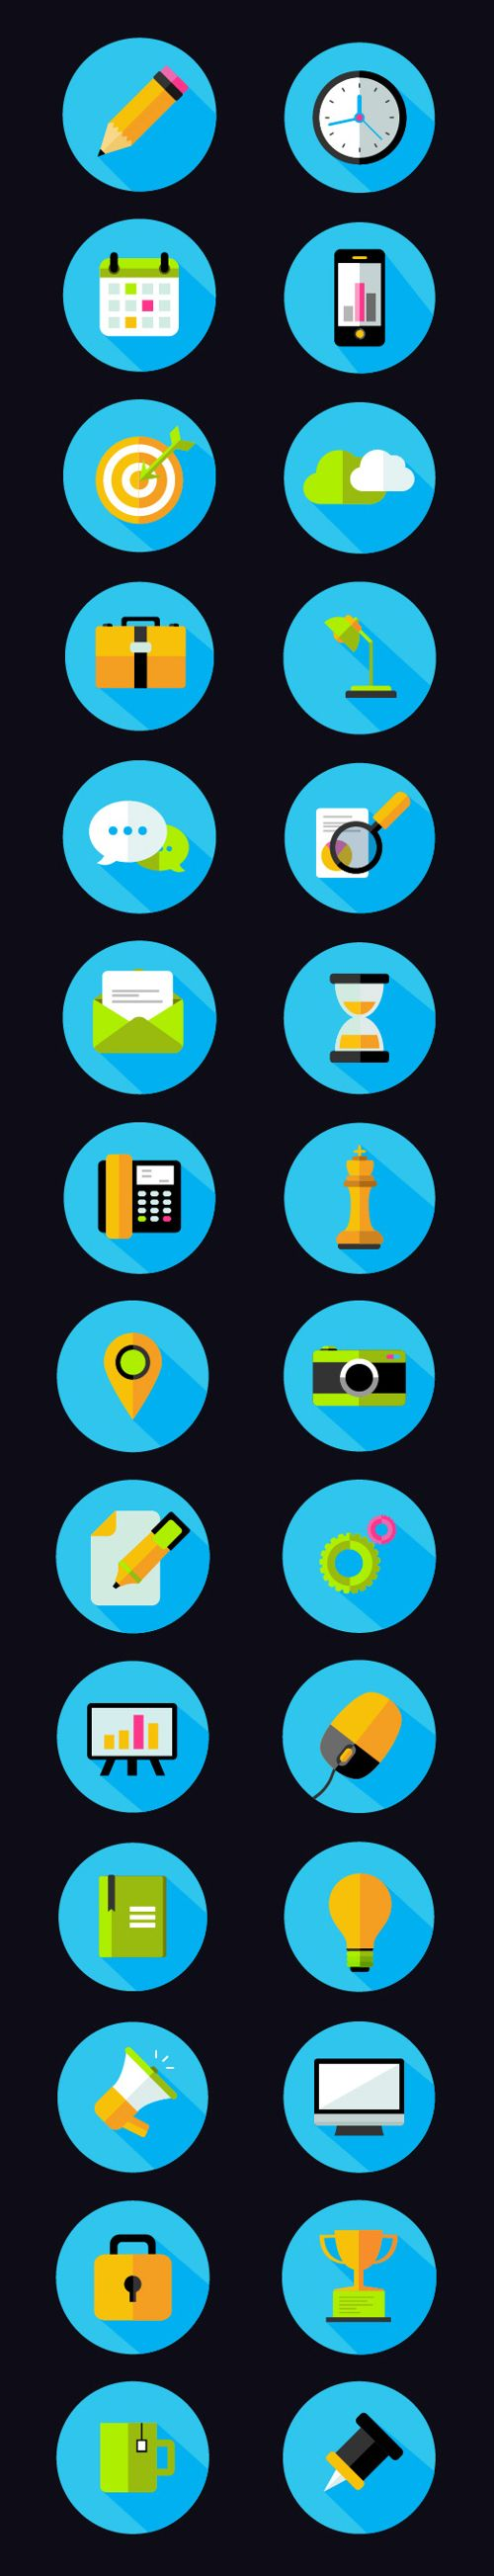 Free Flat Icons Pack (28 Icons) #freepsdicons #vectoricons #flaticons #outlineicons #uiicons